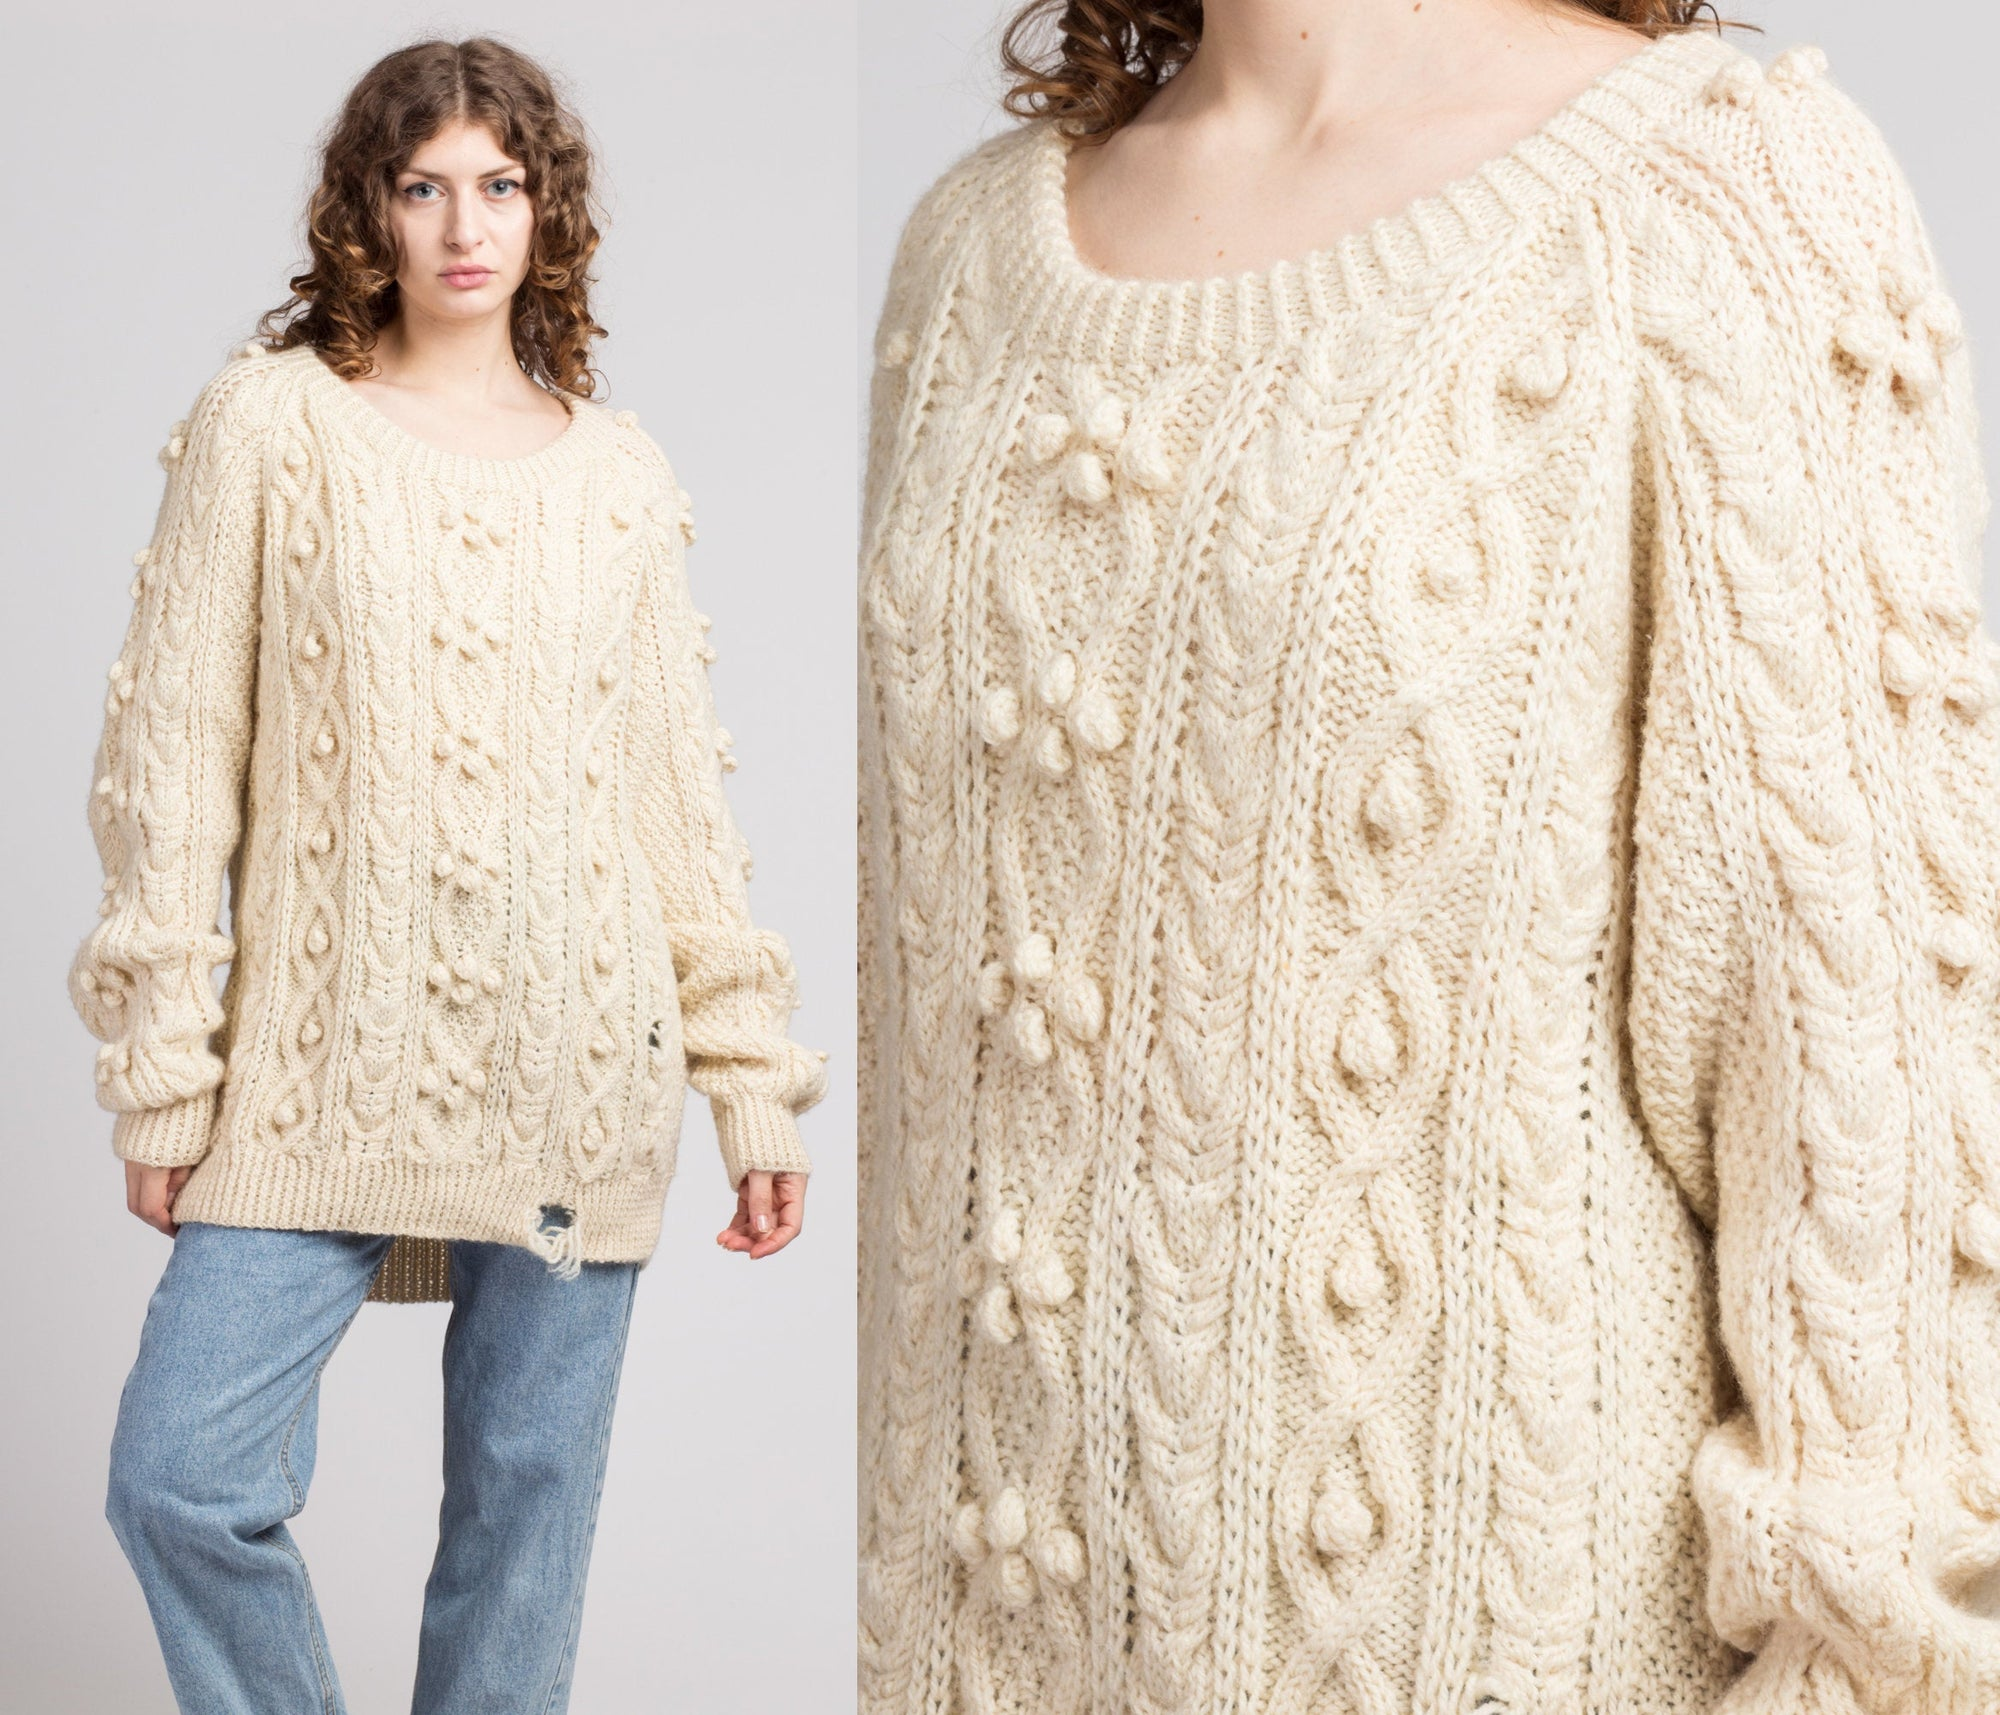 80s Popcorn Cable Knit Slouchy Sweater - Extra Large